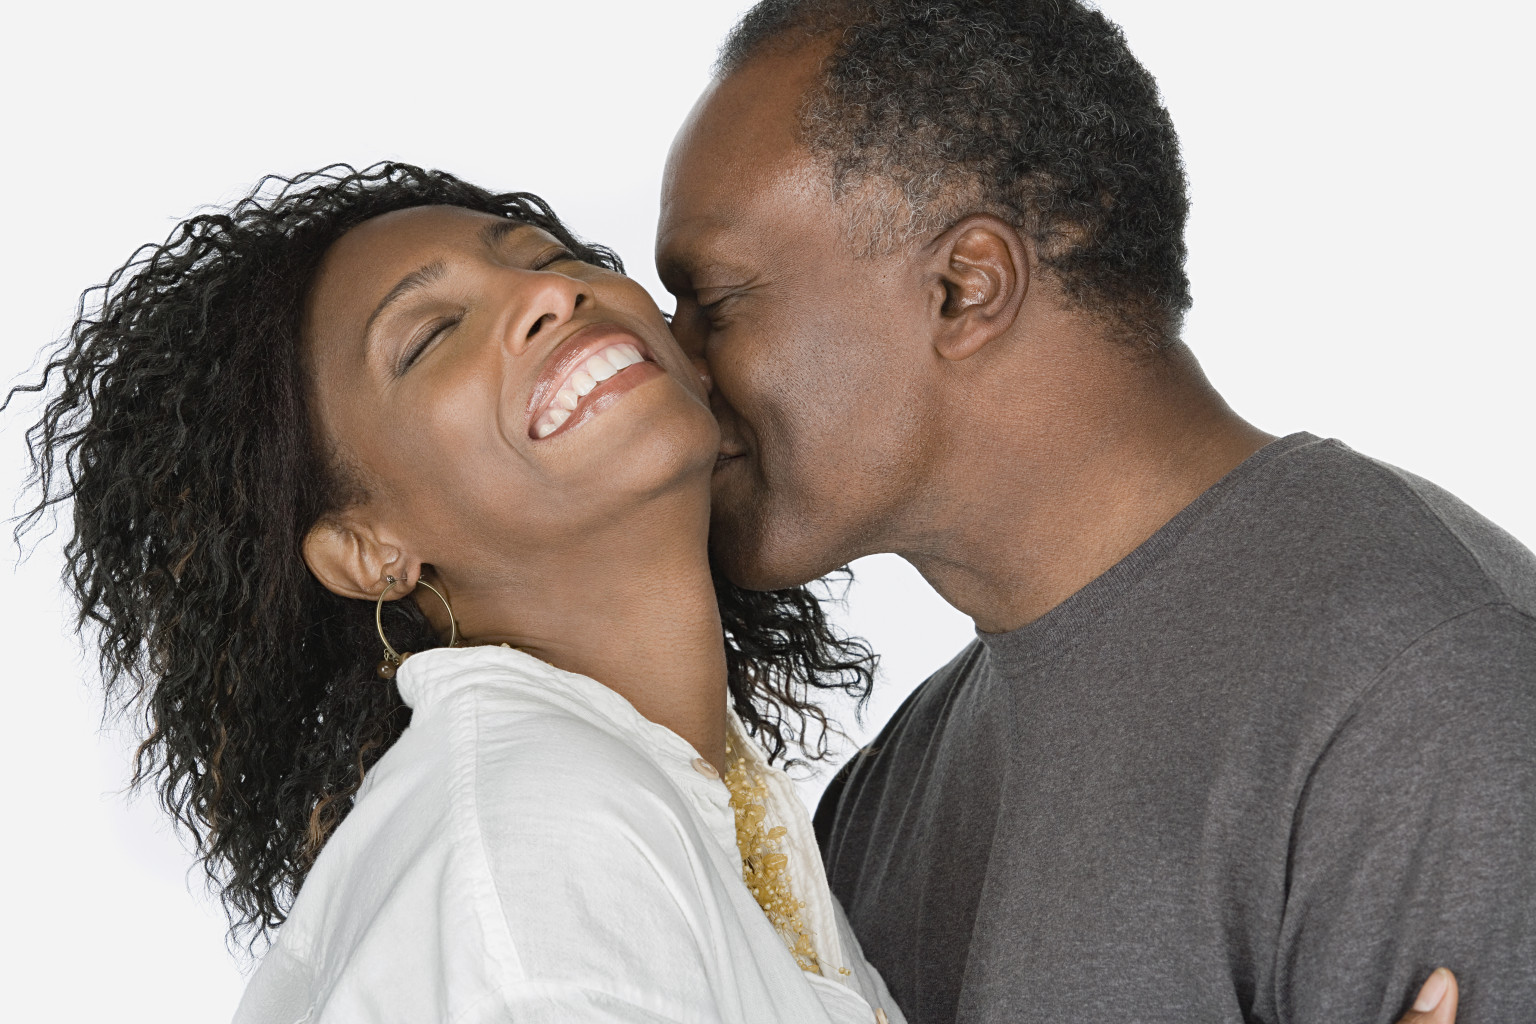 Rules for dating an older man relationship